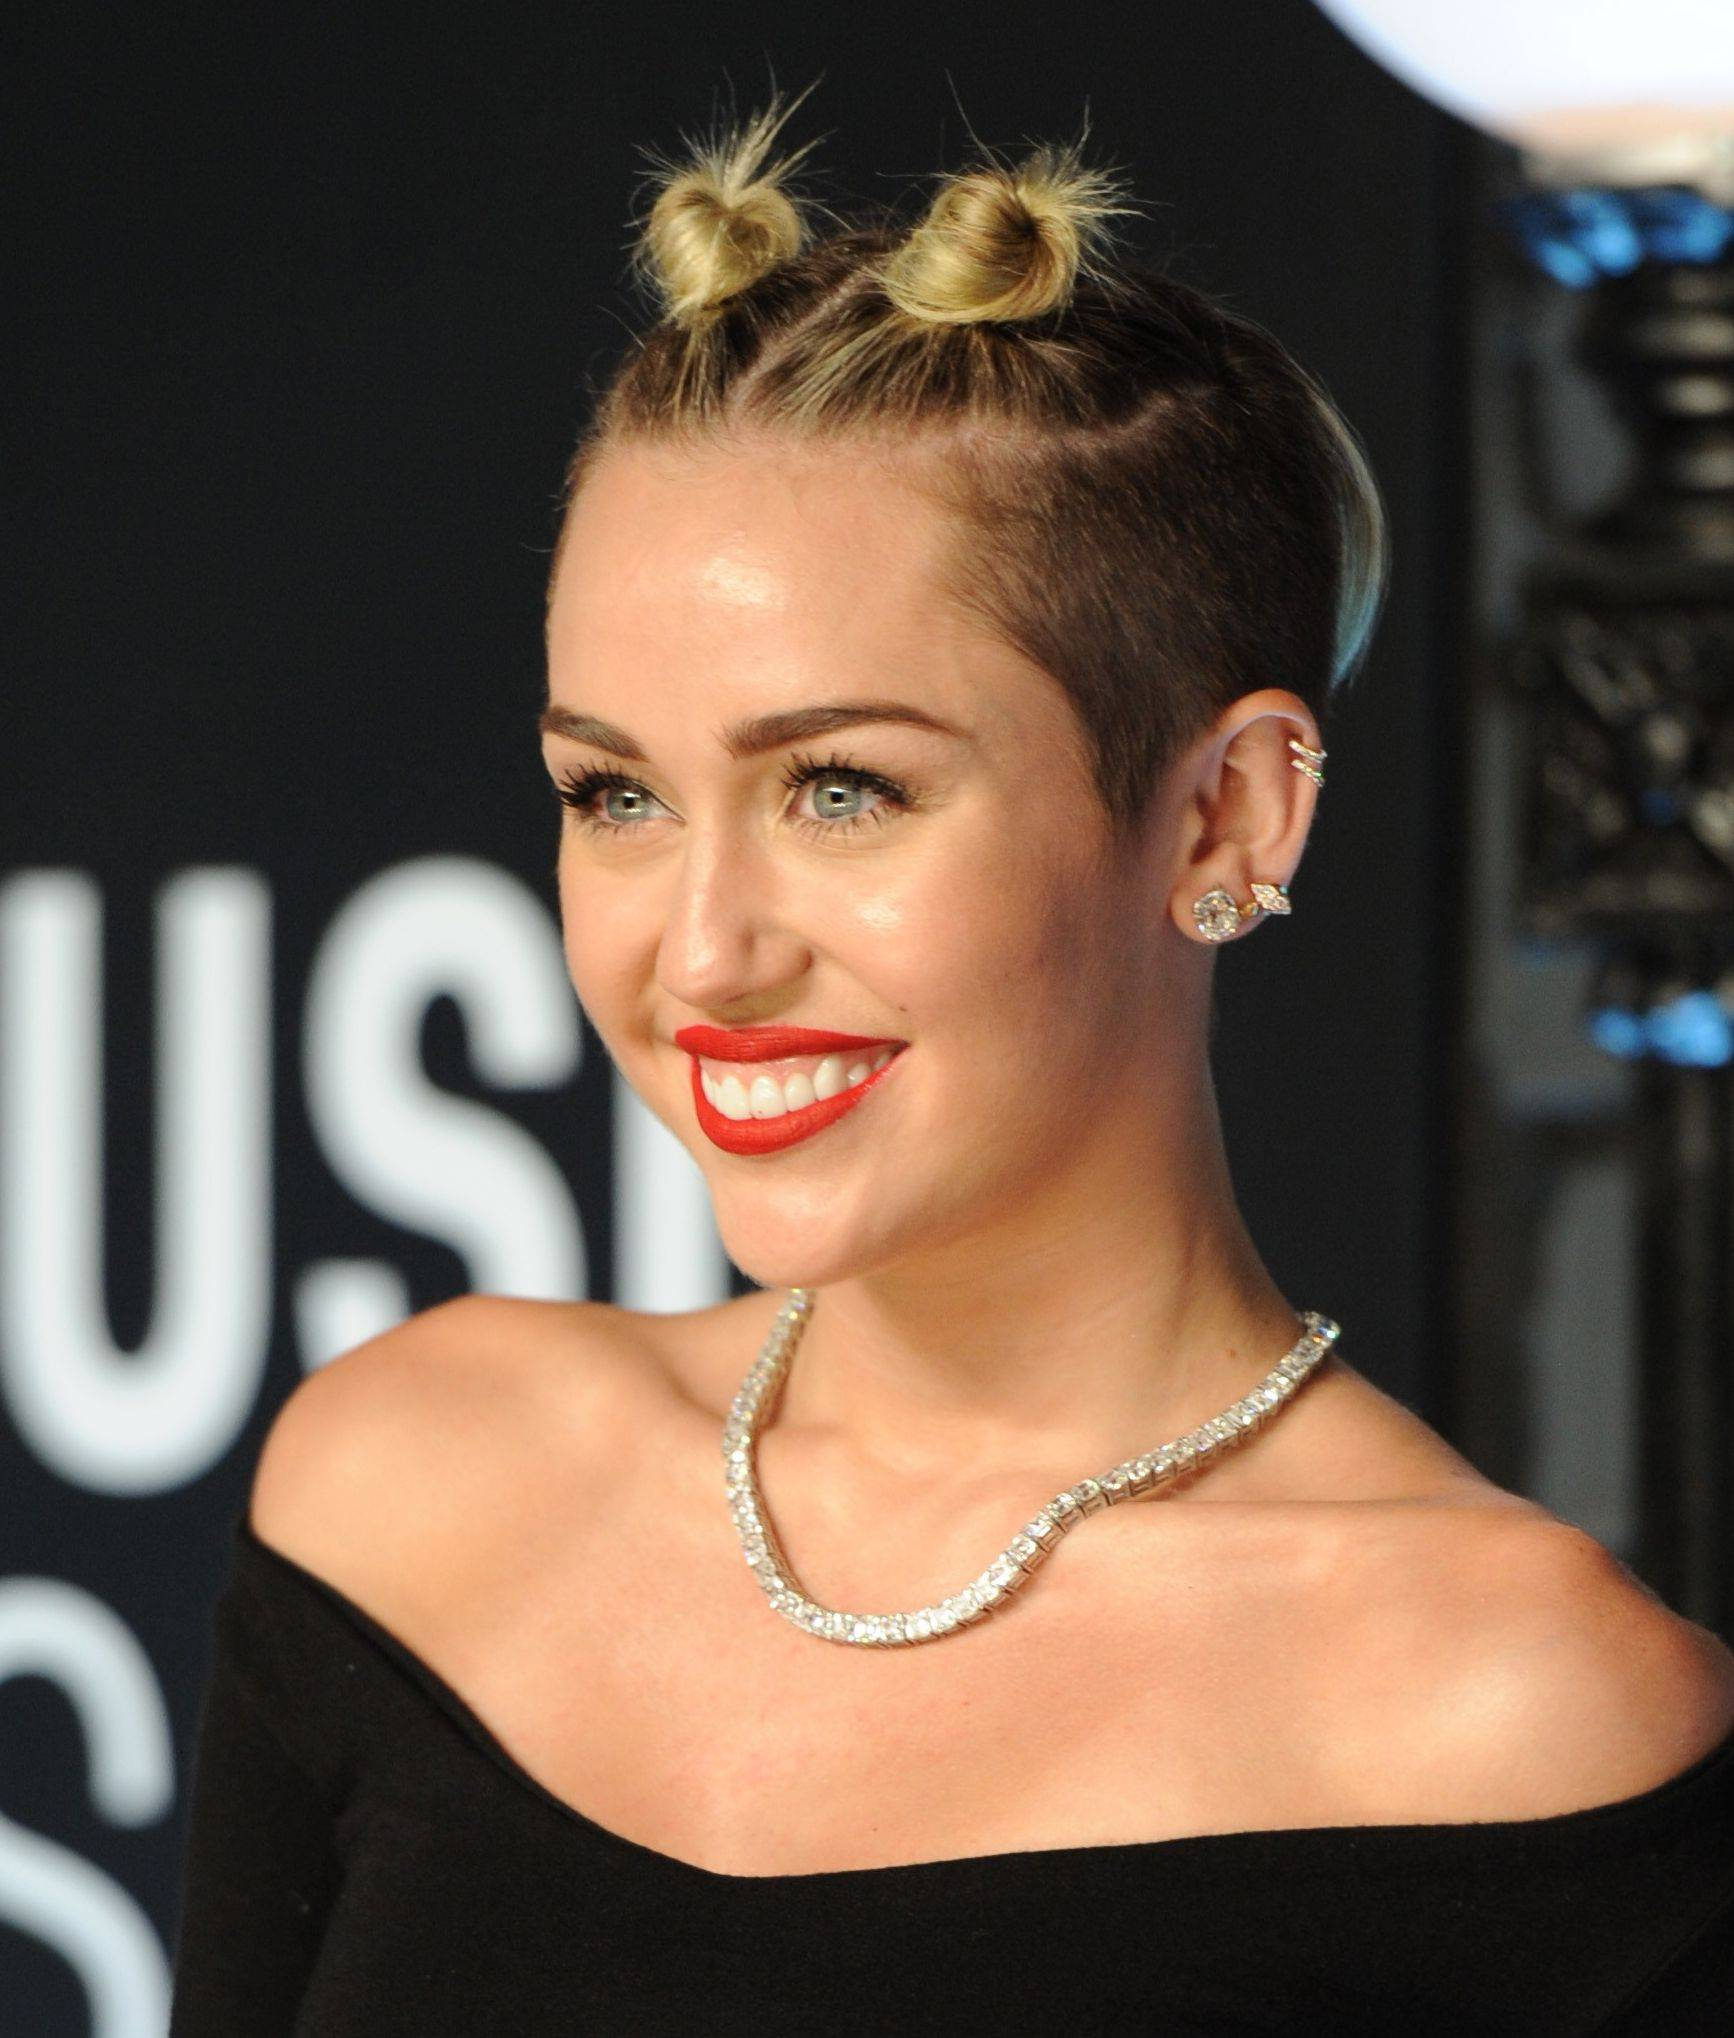 Miley Cyrus arrives at the MTV Video Music Awards on Sunday � before she did her best to promote the Oxford dictionary�s newest word.